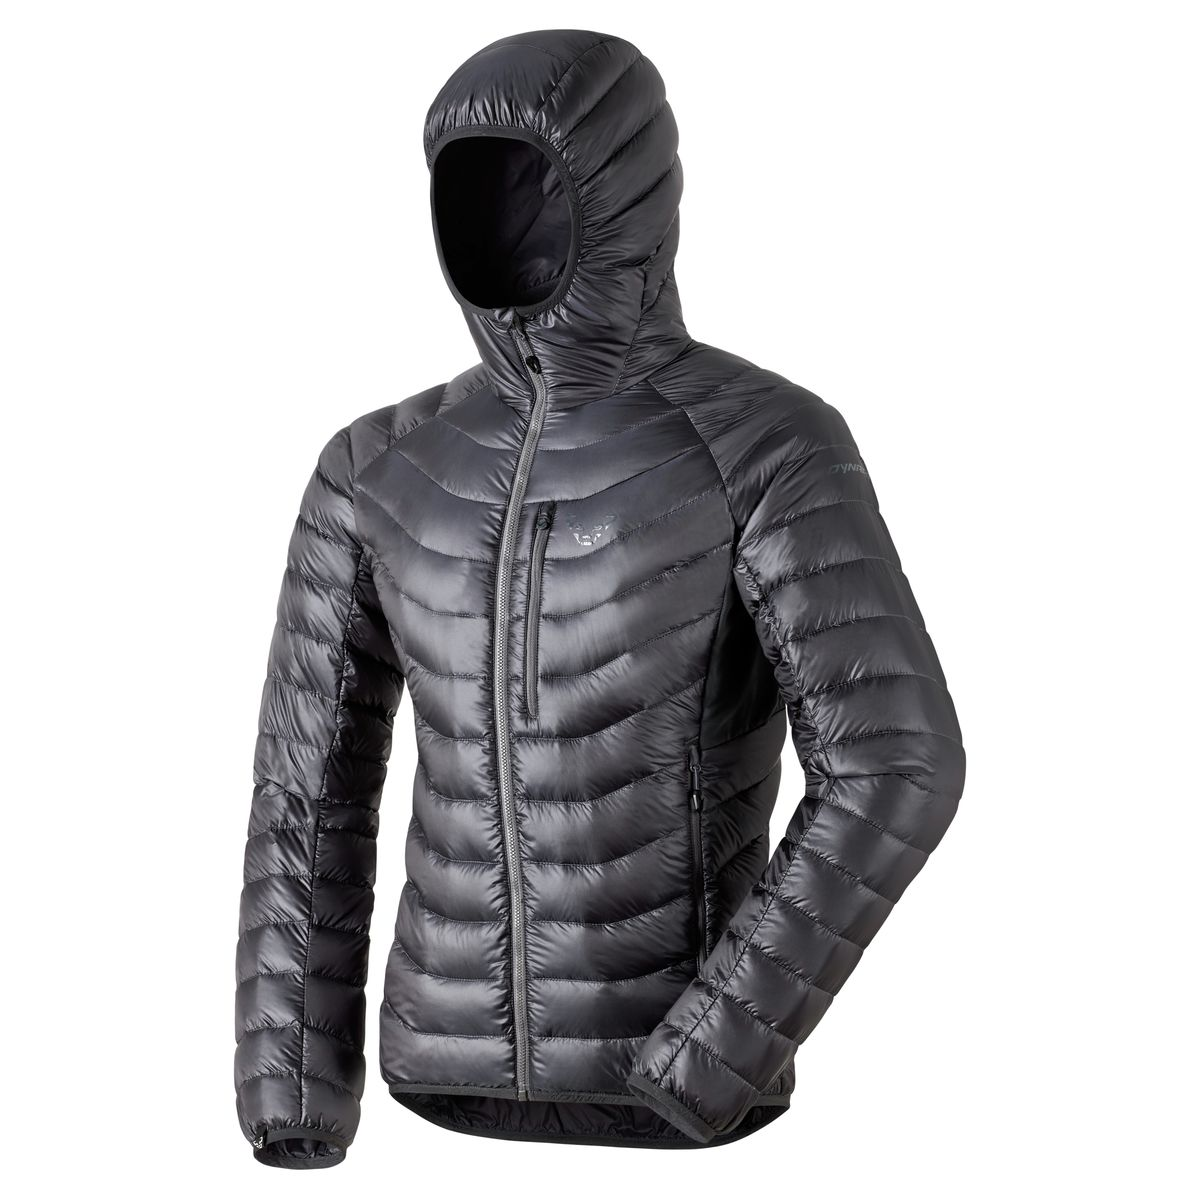 856 - Dynafit Vulcan Down M Hood Jacket sale discount price